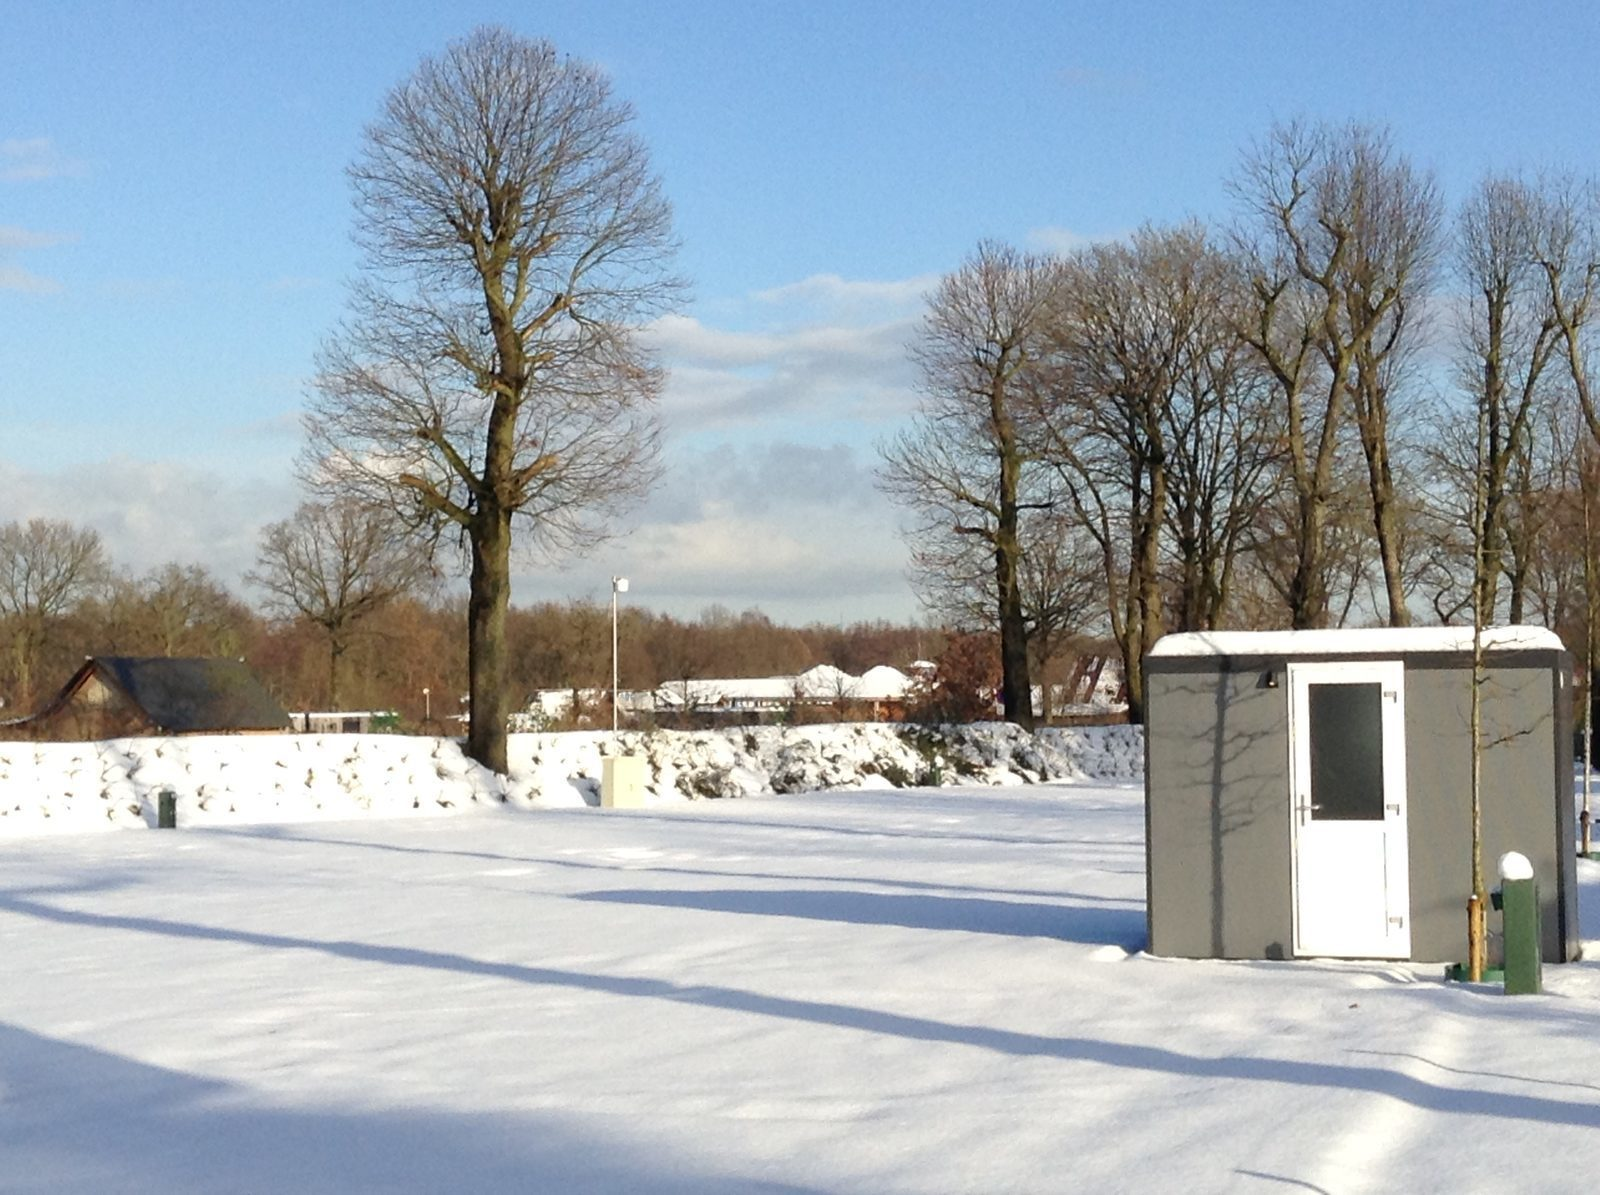 Kamperen in de winter op Ackersate